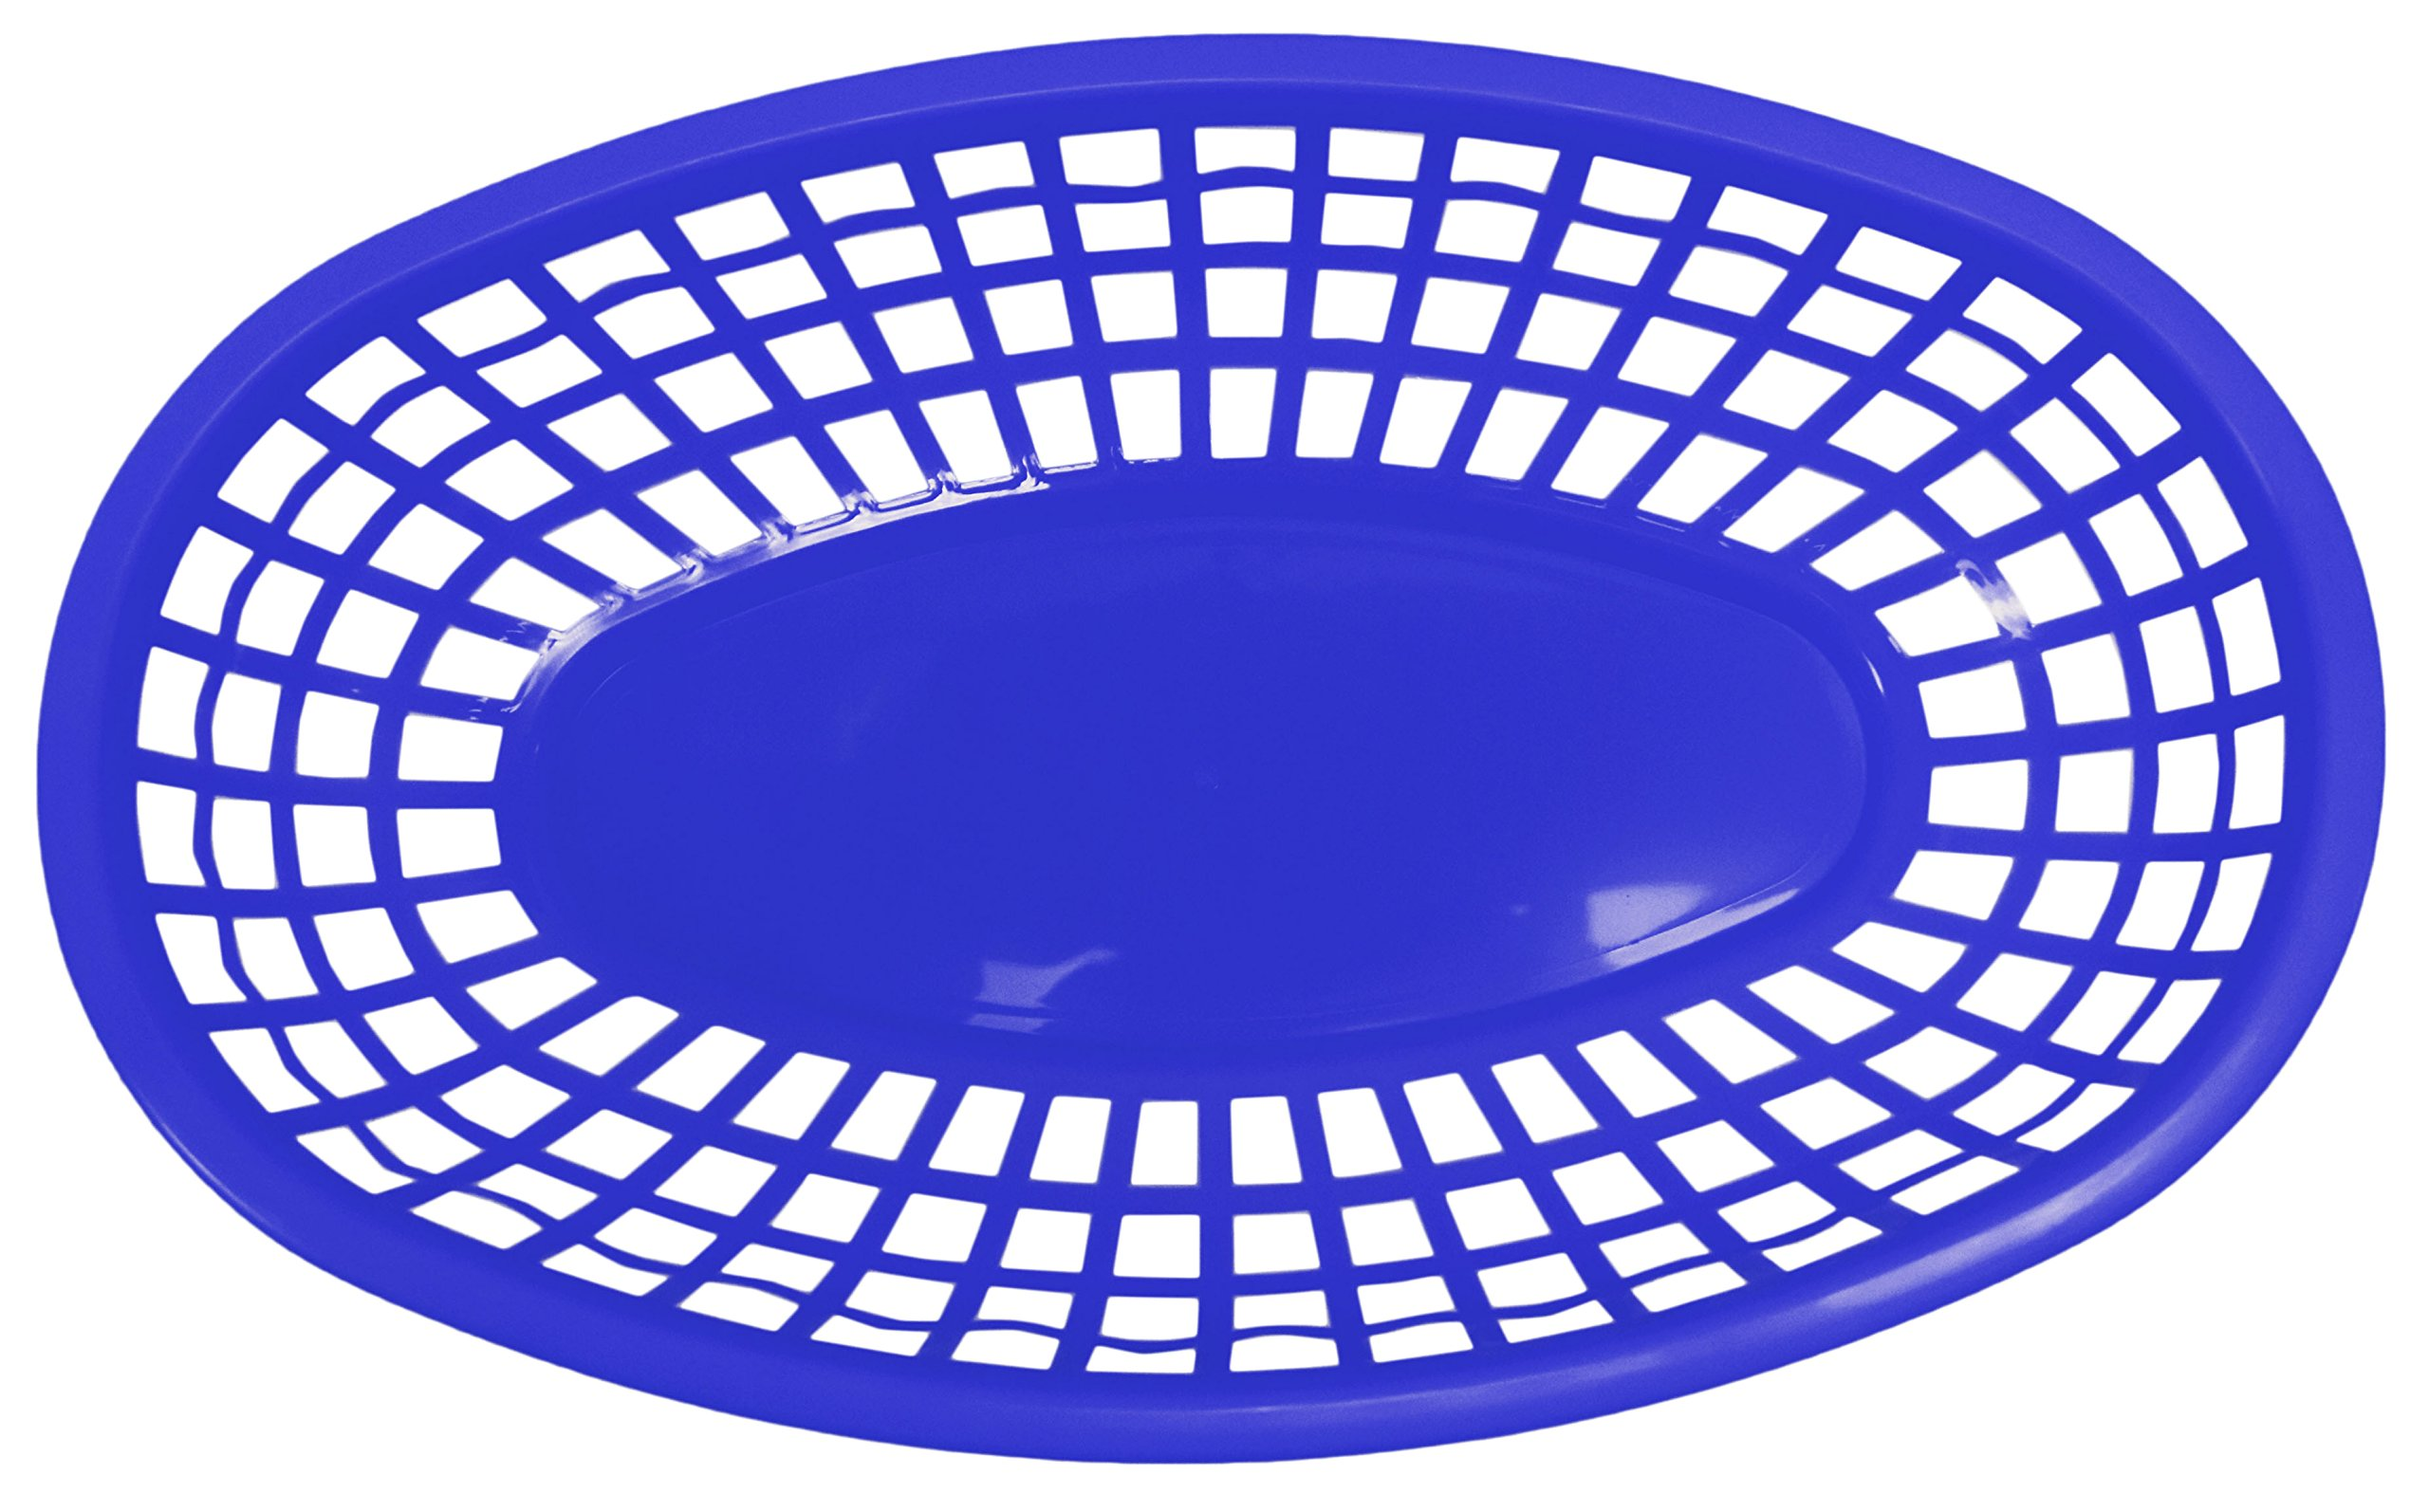 Set of 12 Blue Oval Fast Food / Deli Baskets, 9.25 by 5.67-Inch, Blue (12) by Regent (Image #3)